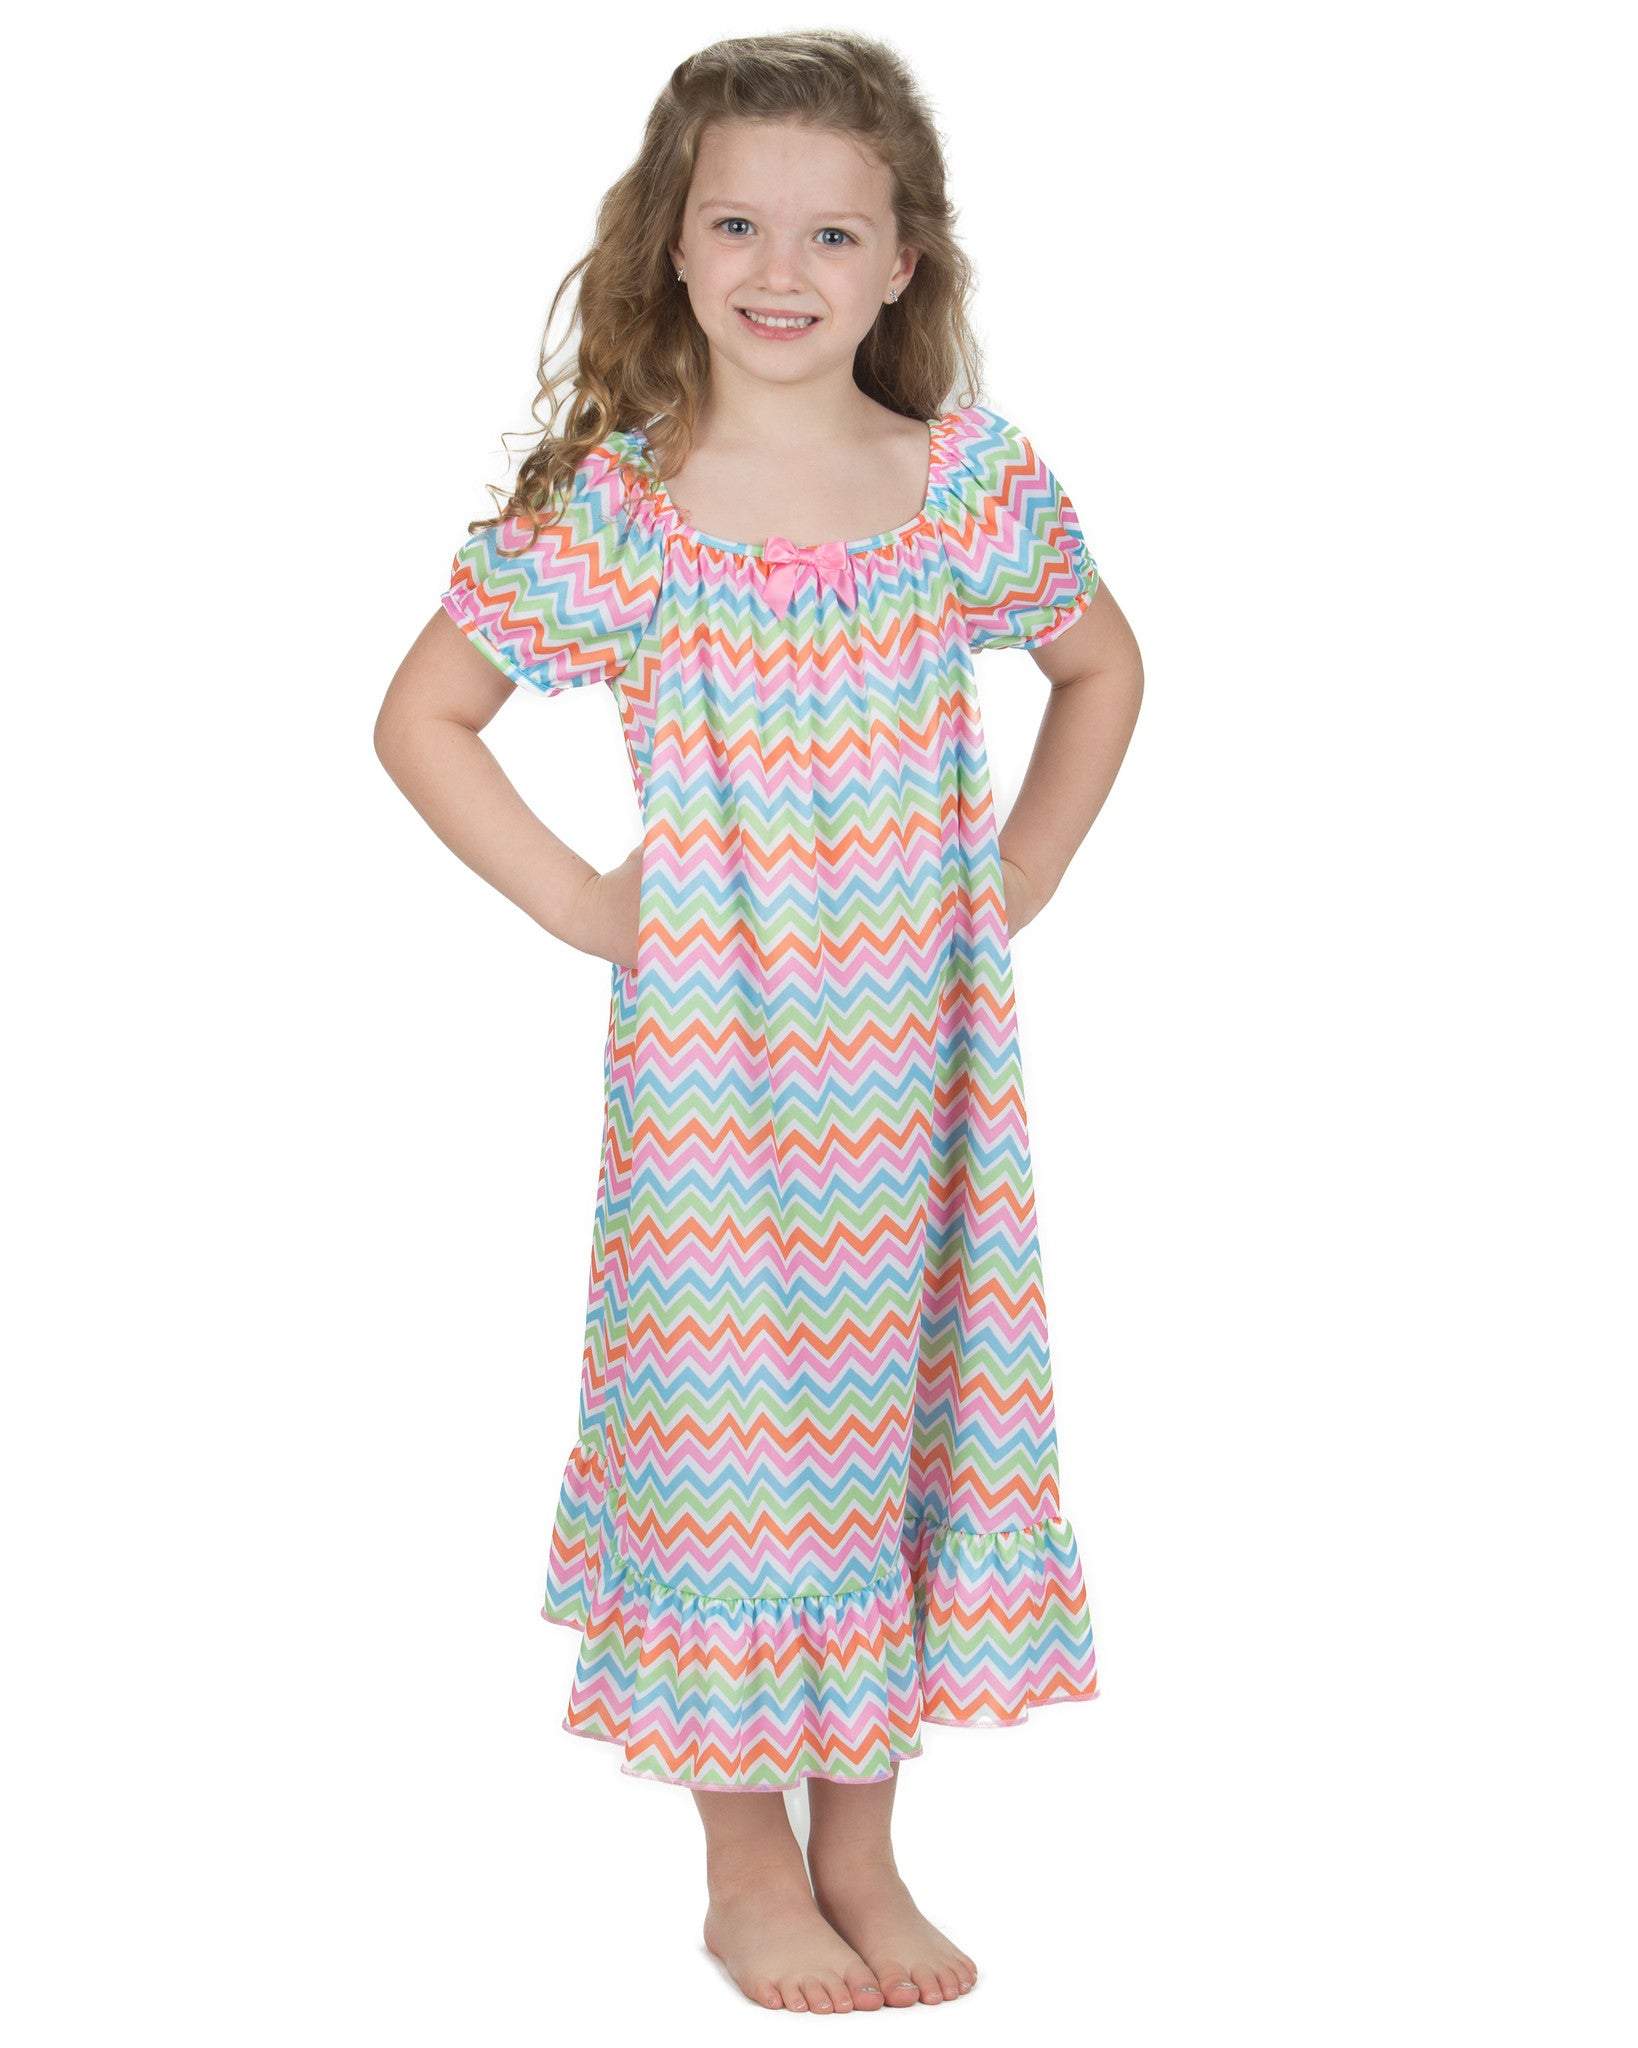 Laura Dare Flutterby Puff Sleeve Nightgown (6m-14)